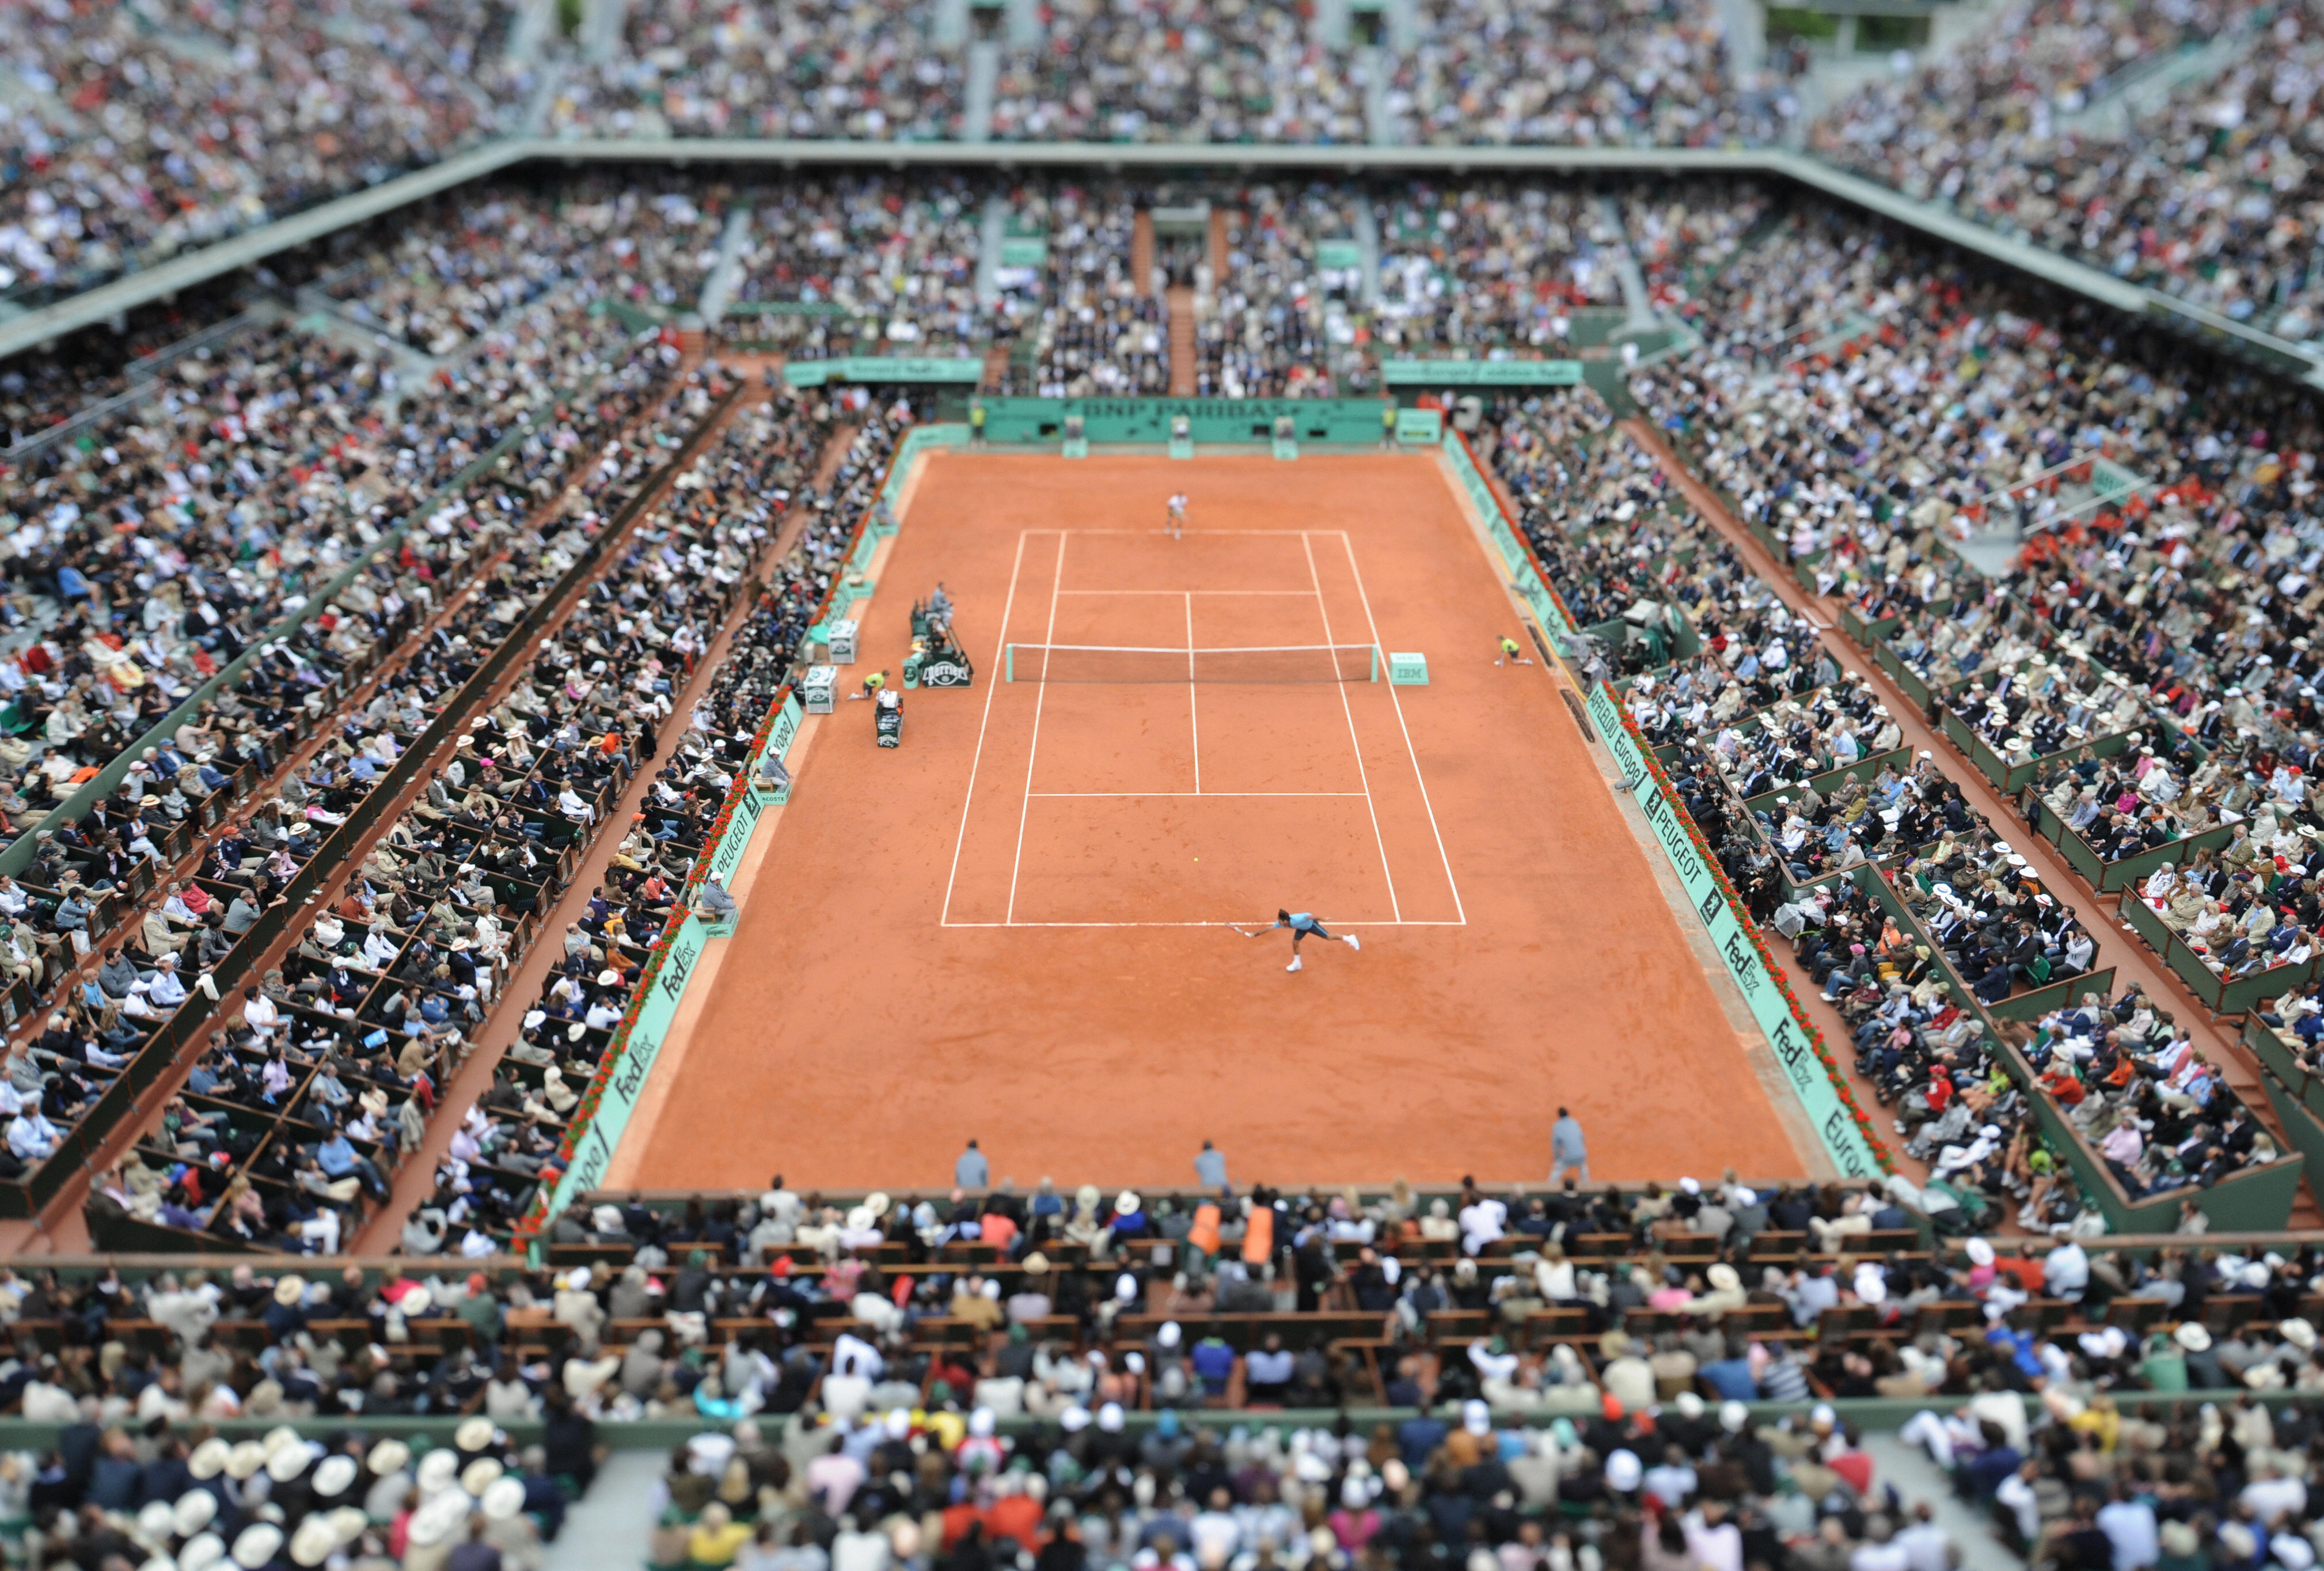  Roland Garros is too small for the large audiences it attracts. 